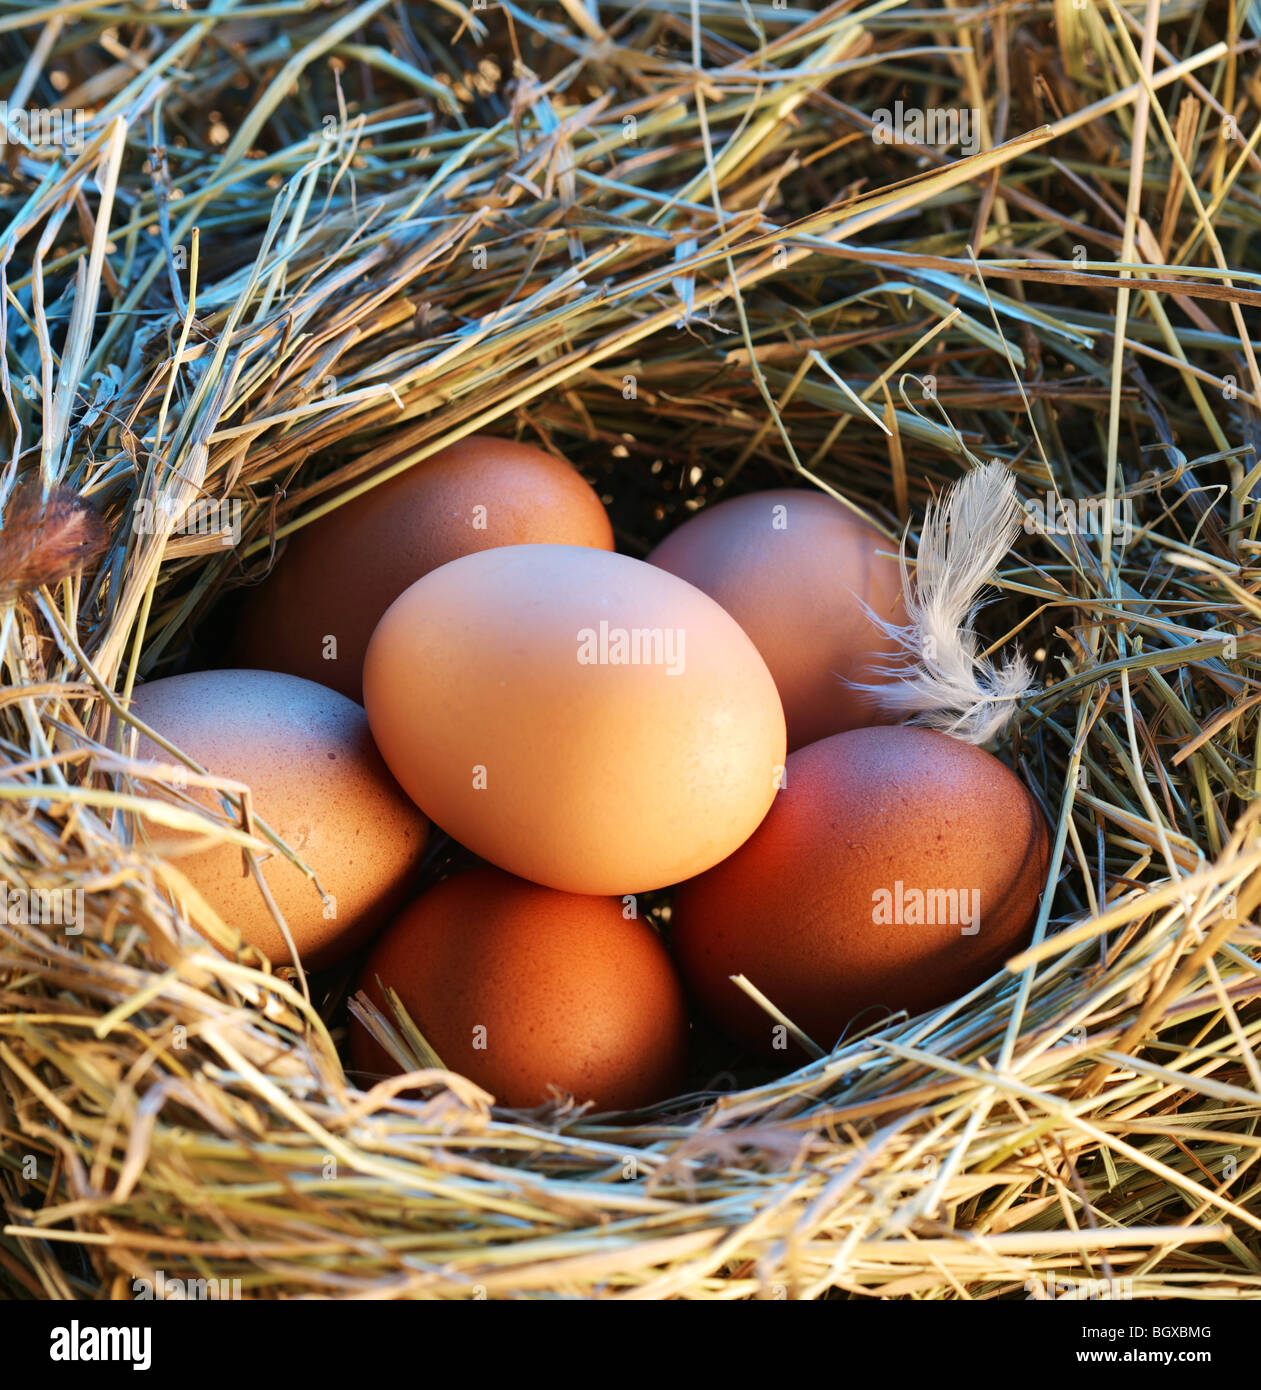 Chicken eggs in the straw in the morning light. - Stock Image